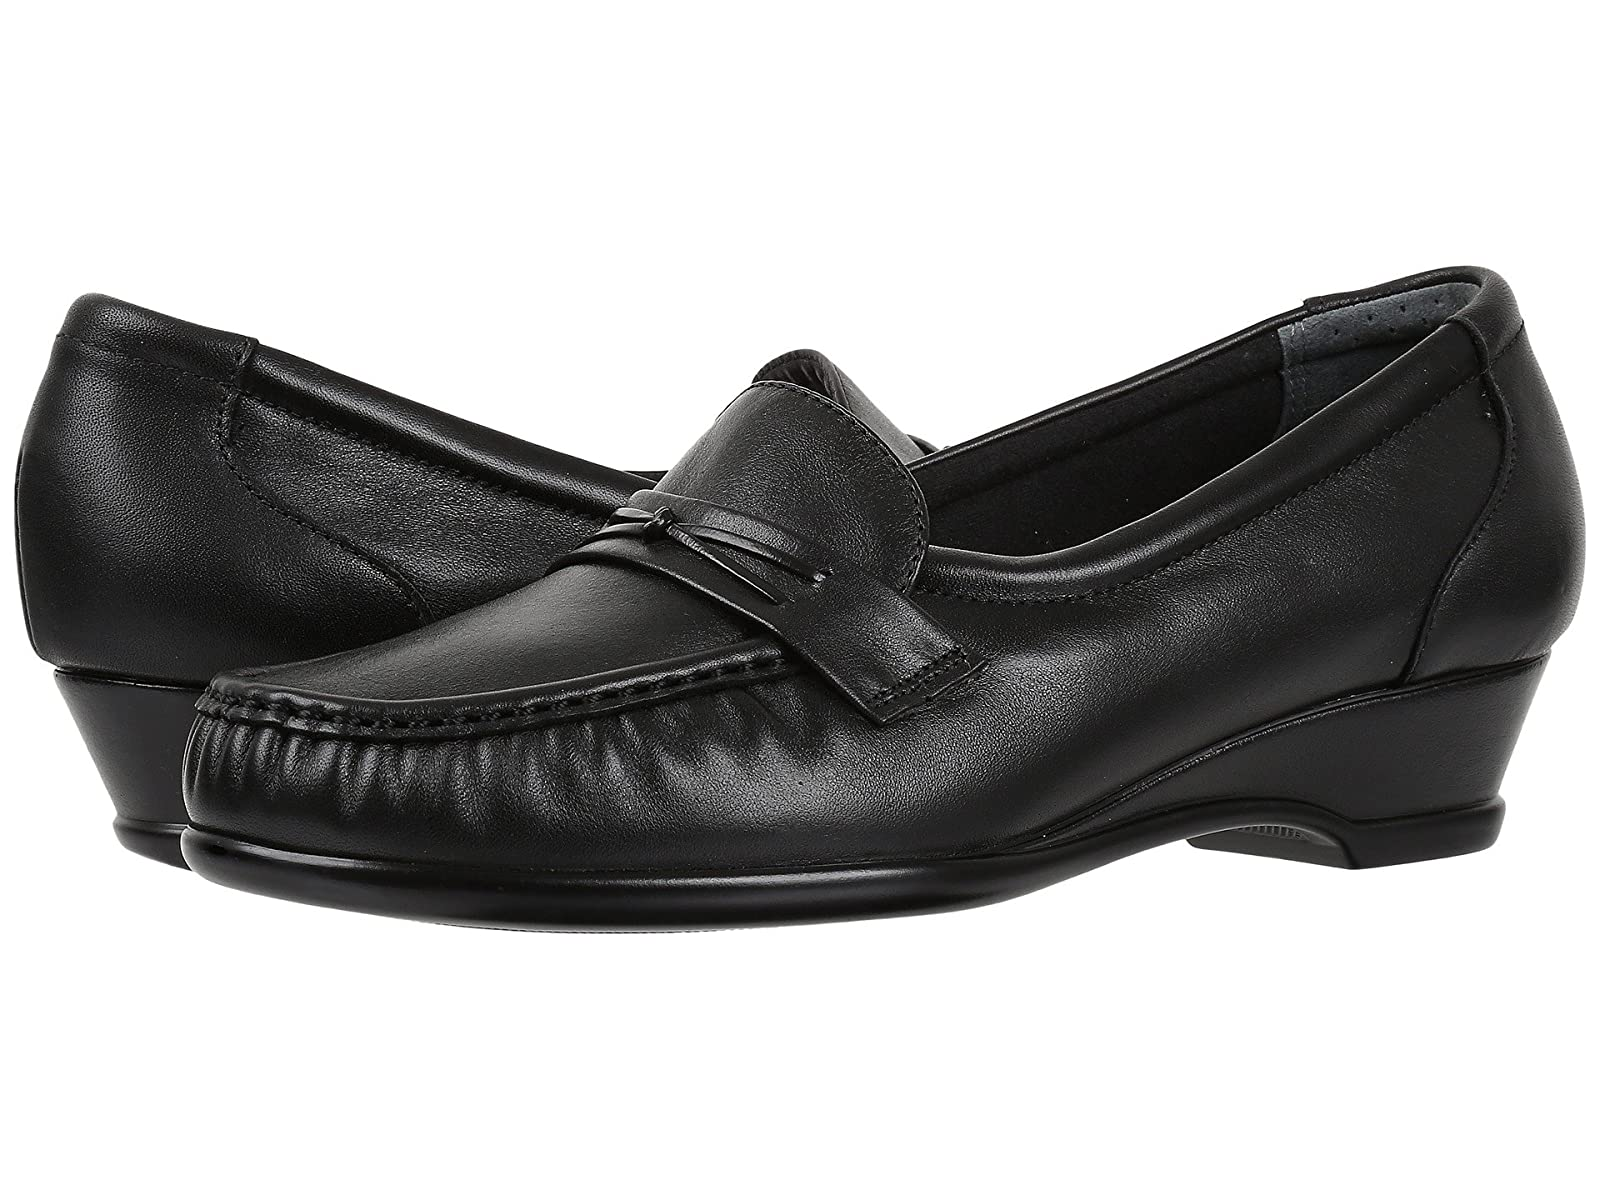 SAS EasierAtmospheric grades have affordable shoes